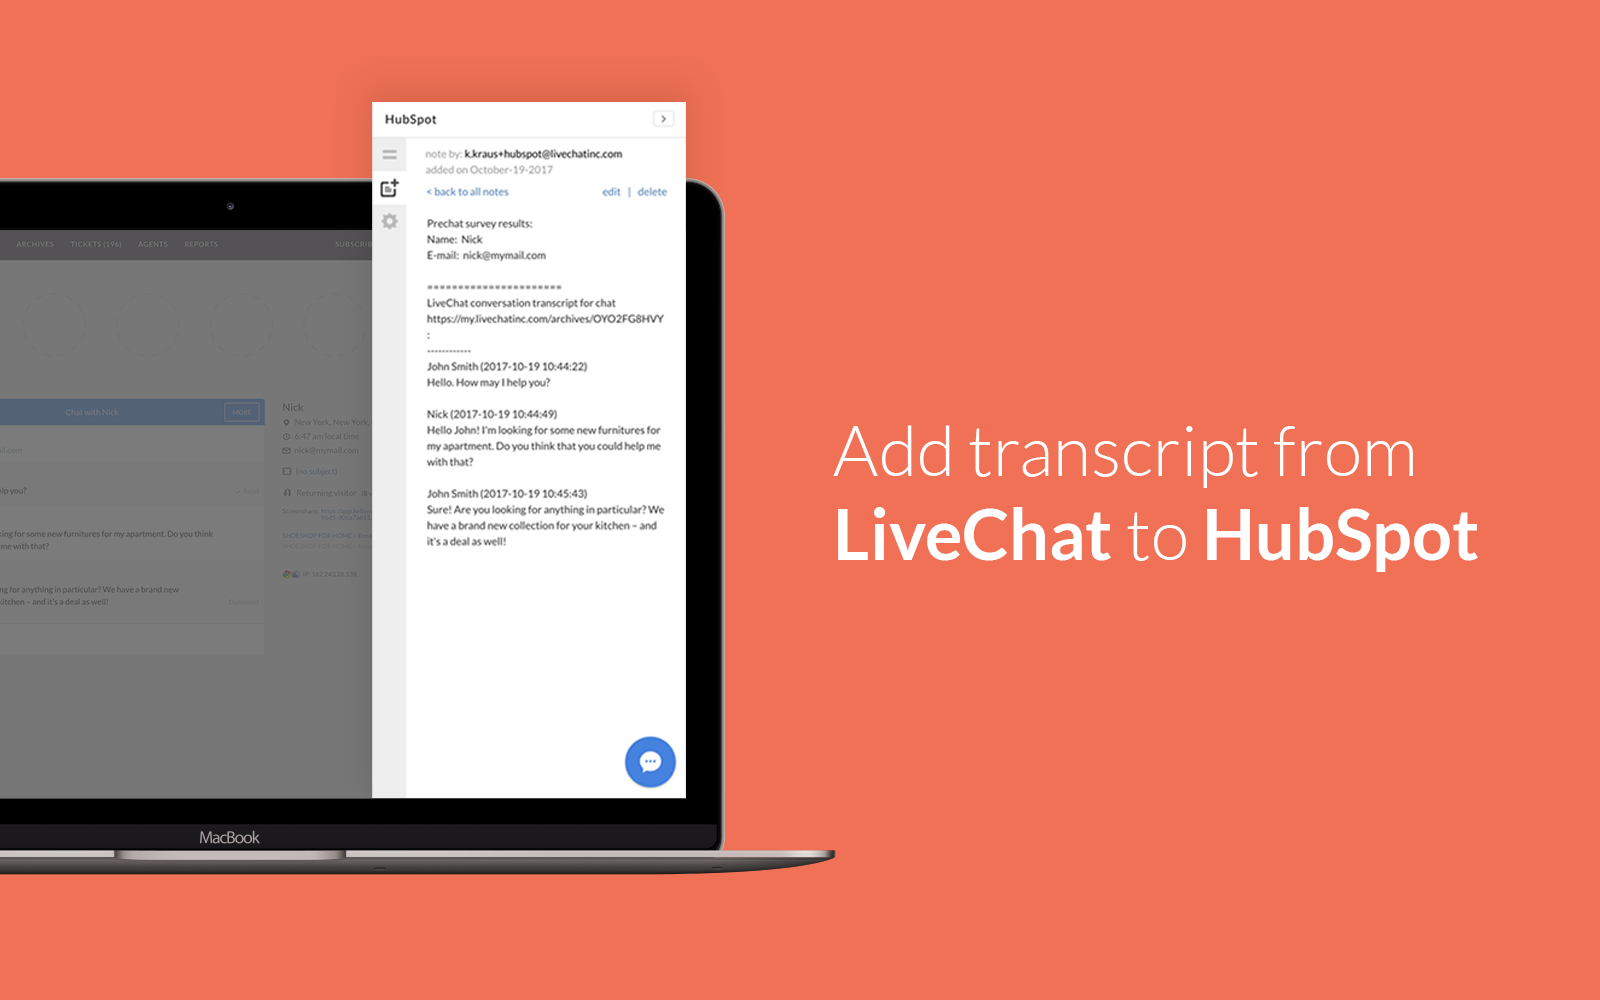 Add transcript to HubSpot